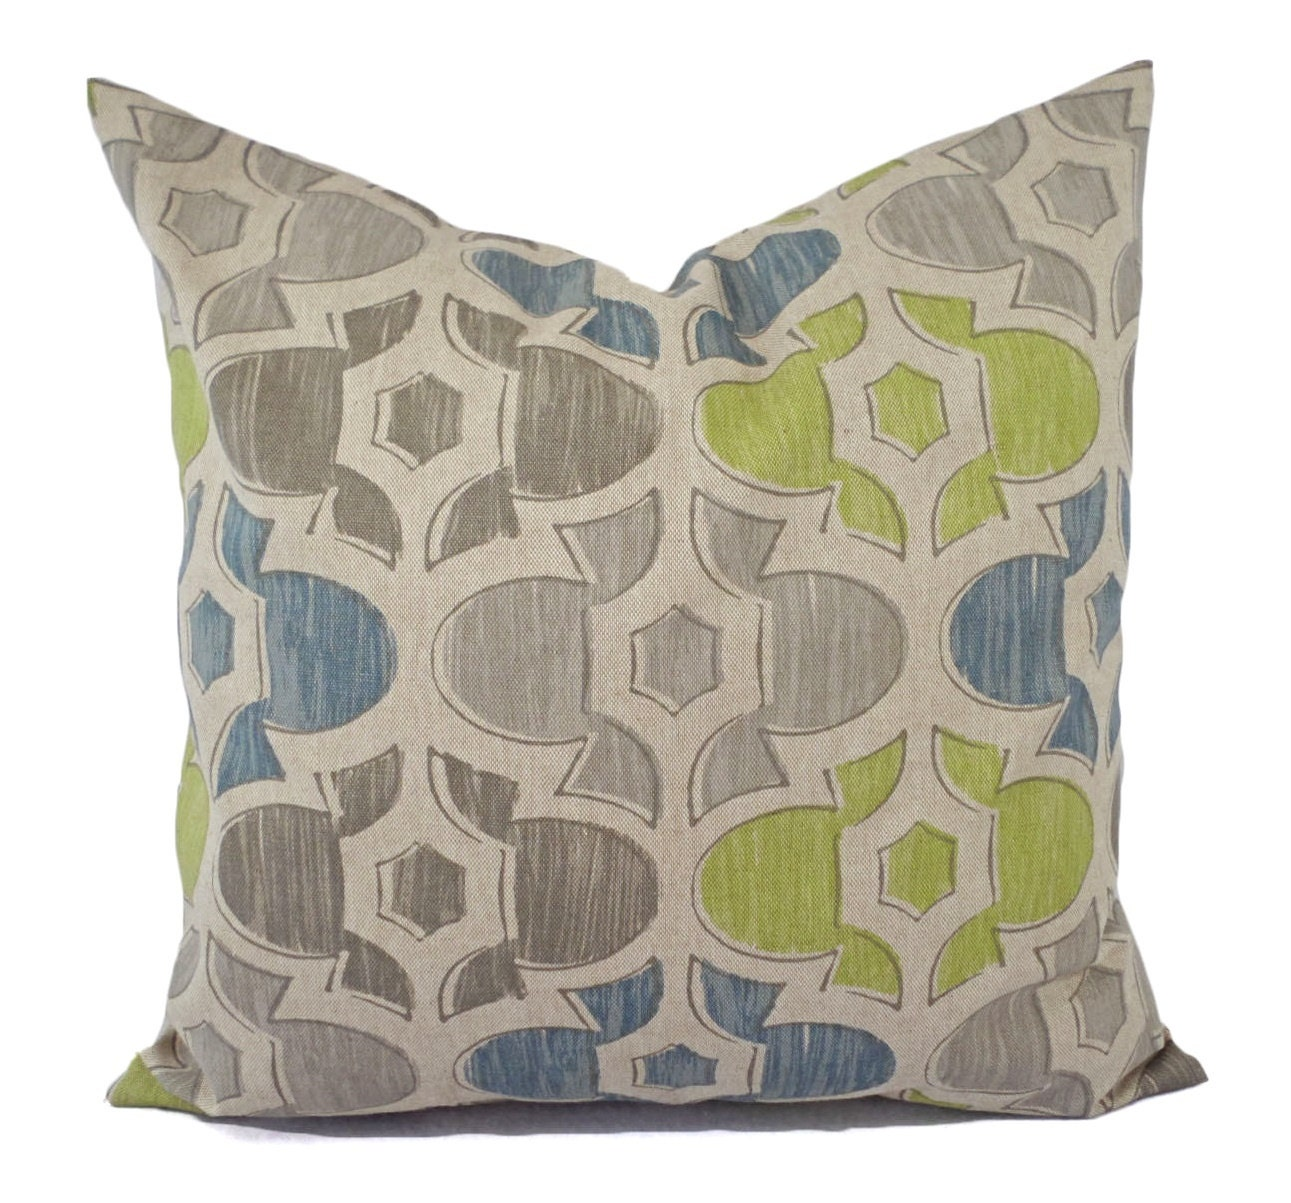 Blue And Green Decorative Throw Pillows : Two Brown Green and Blue Decorative Pillow Covers Two